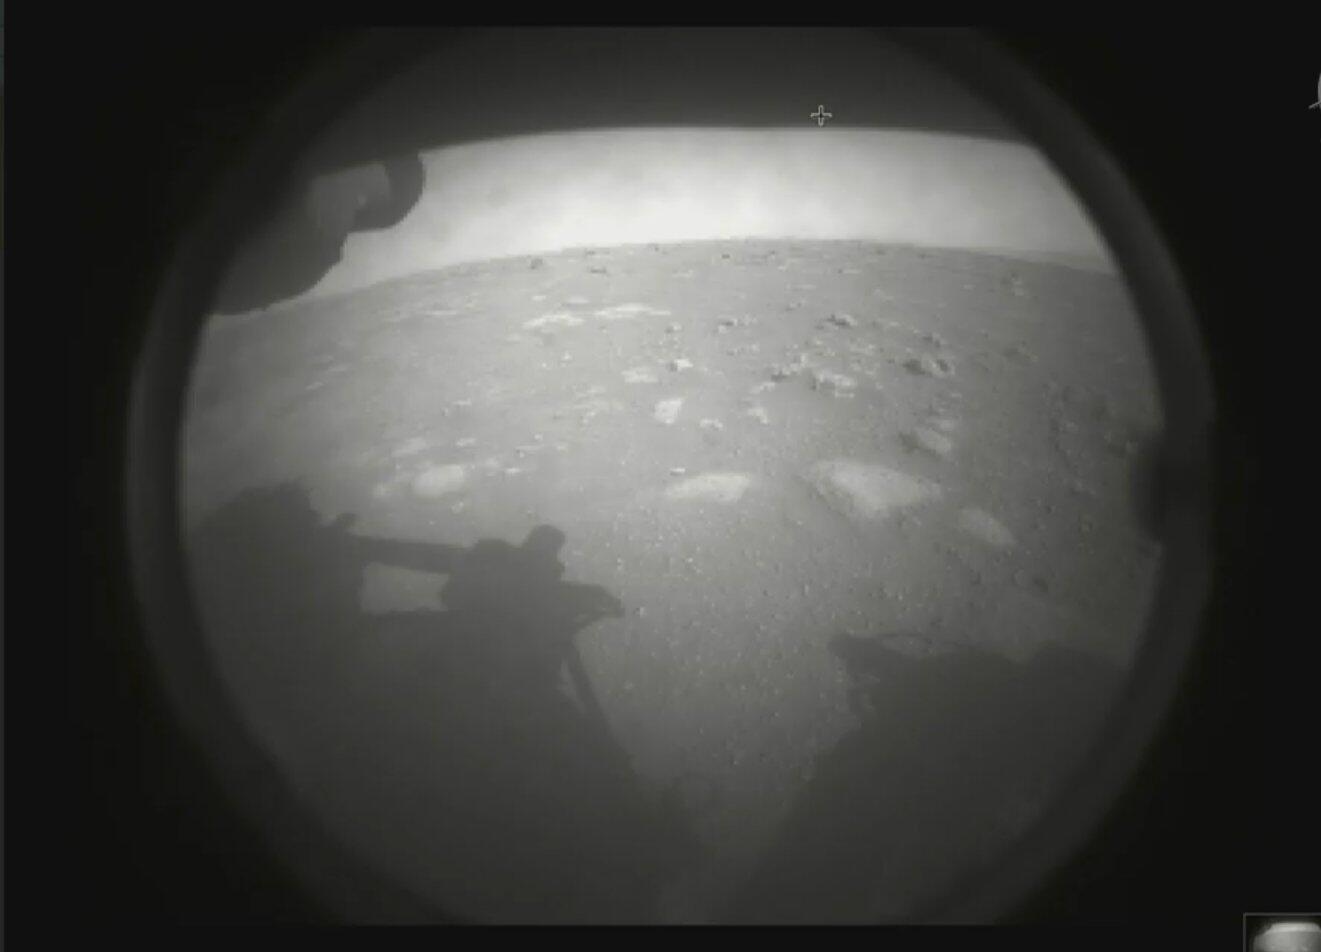 Perseverance rover first view of Mars